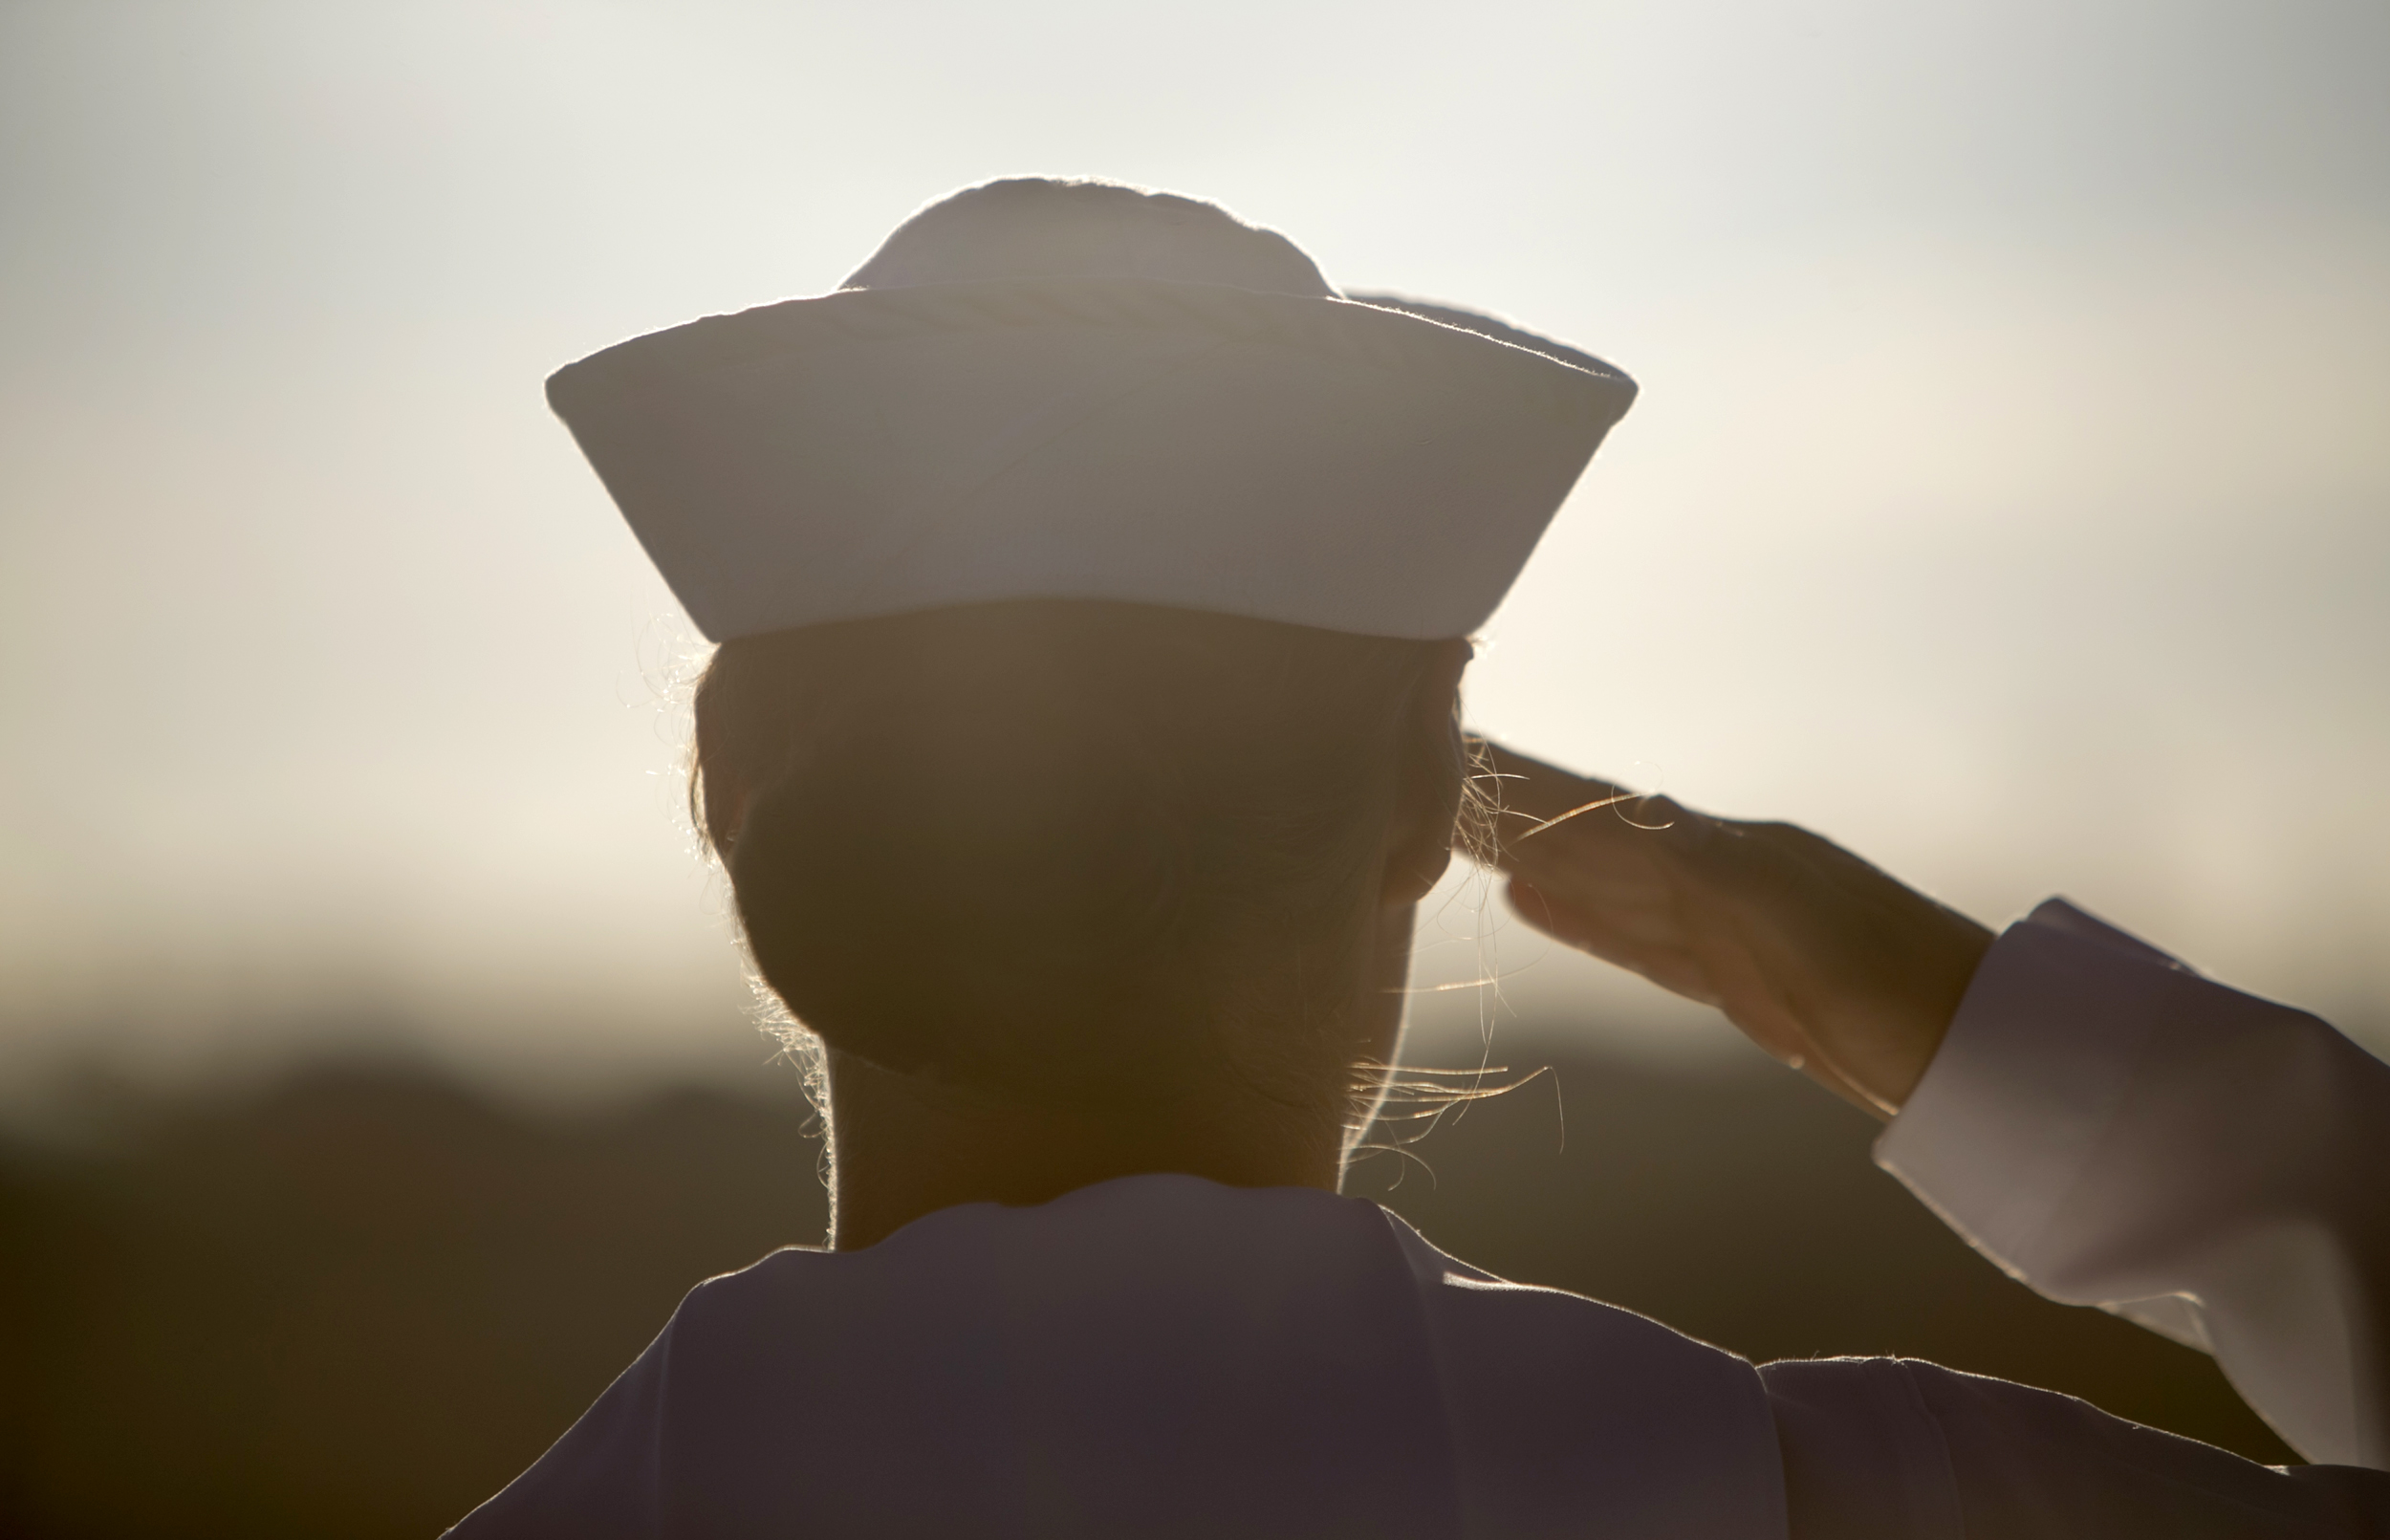 Navy to allow off-duty trans sailors to dress in accordance with gender identity